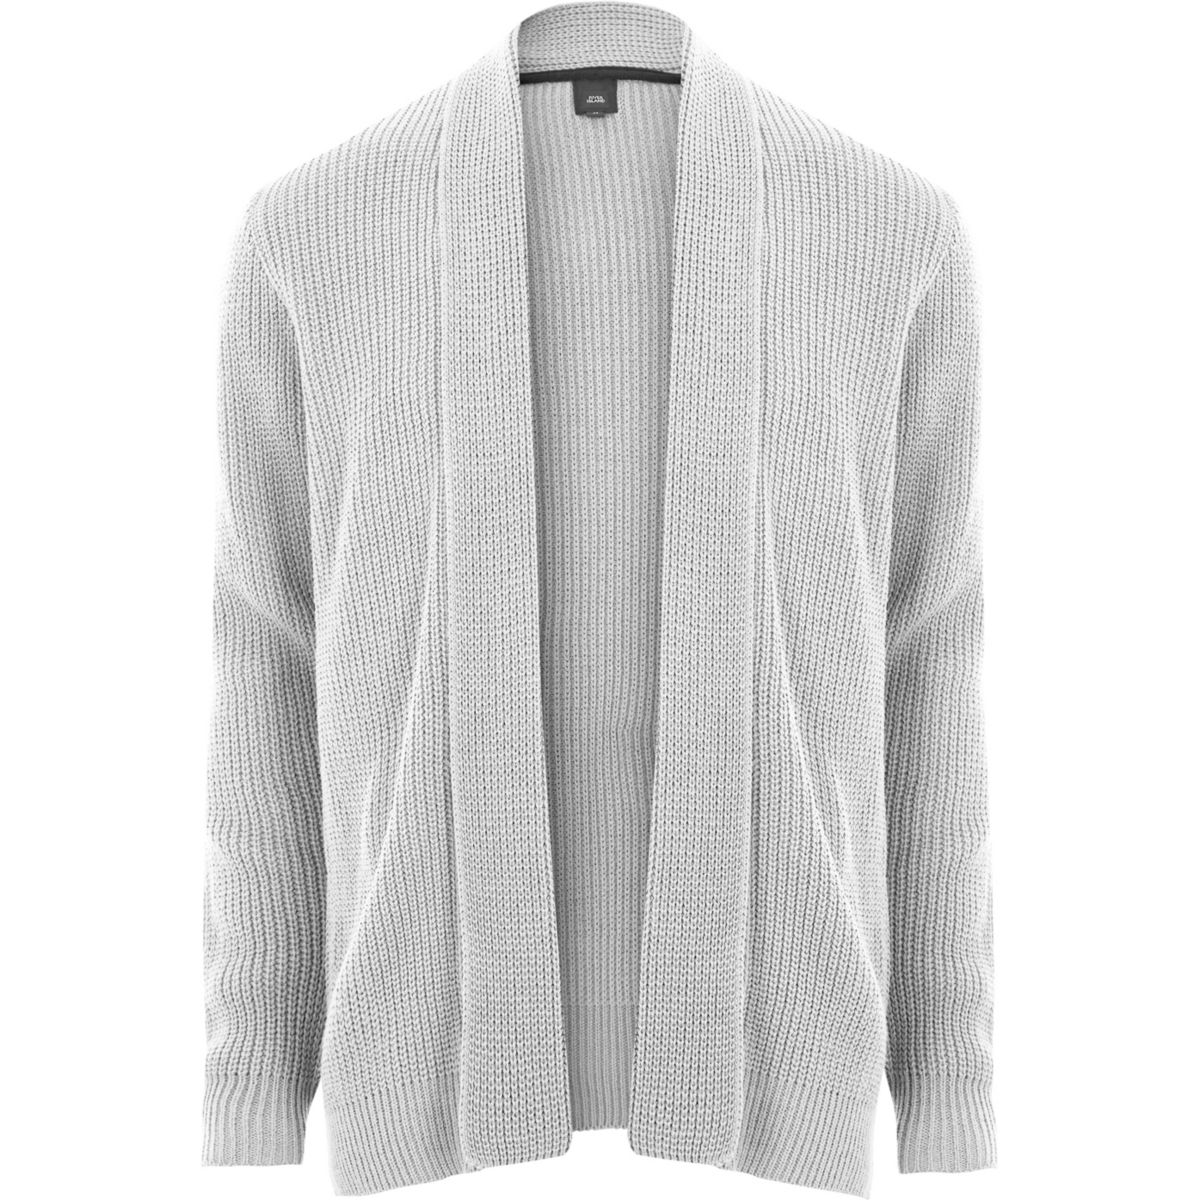 Light grey open front rib knit cardigan - Cardigans - Sweaters ...